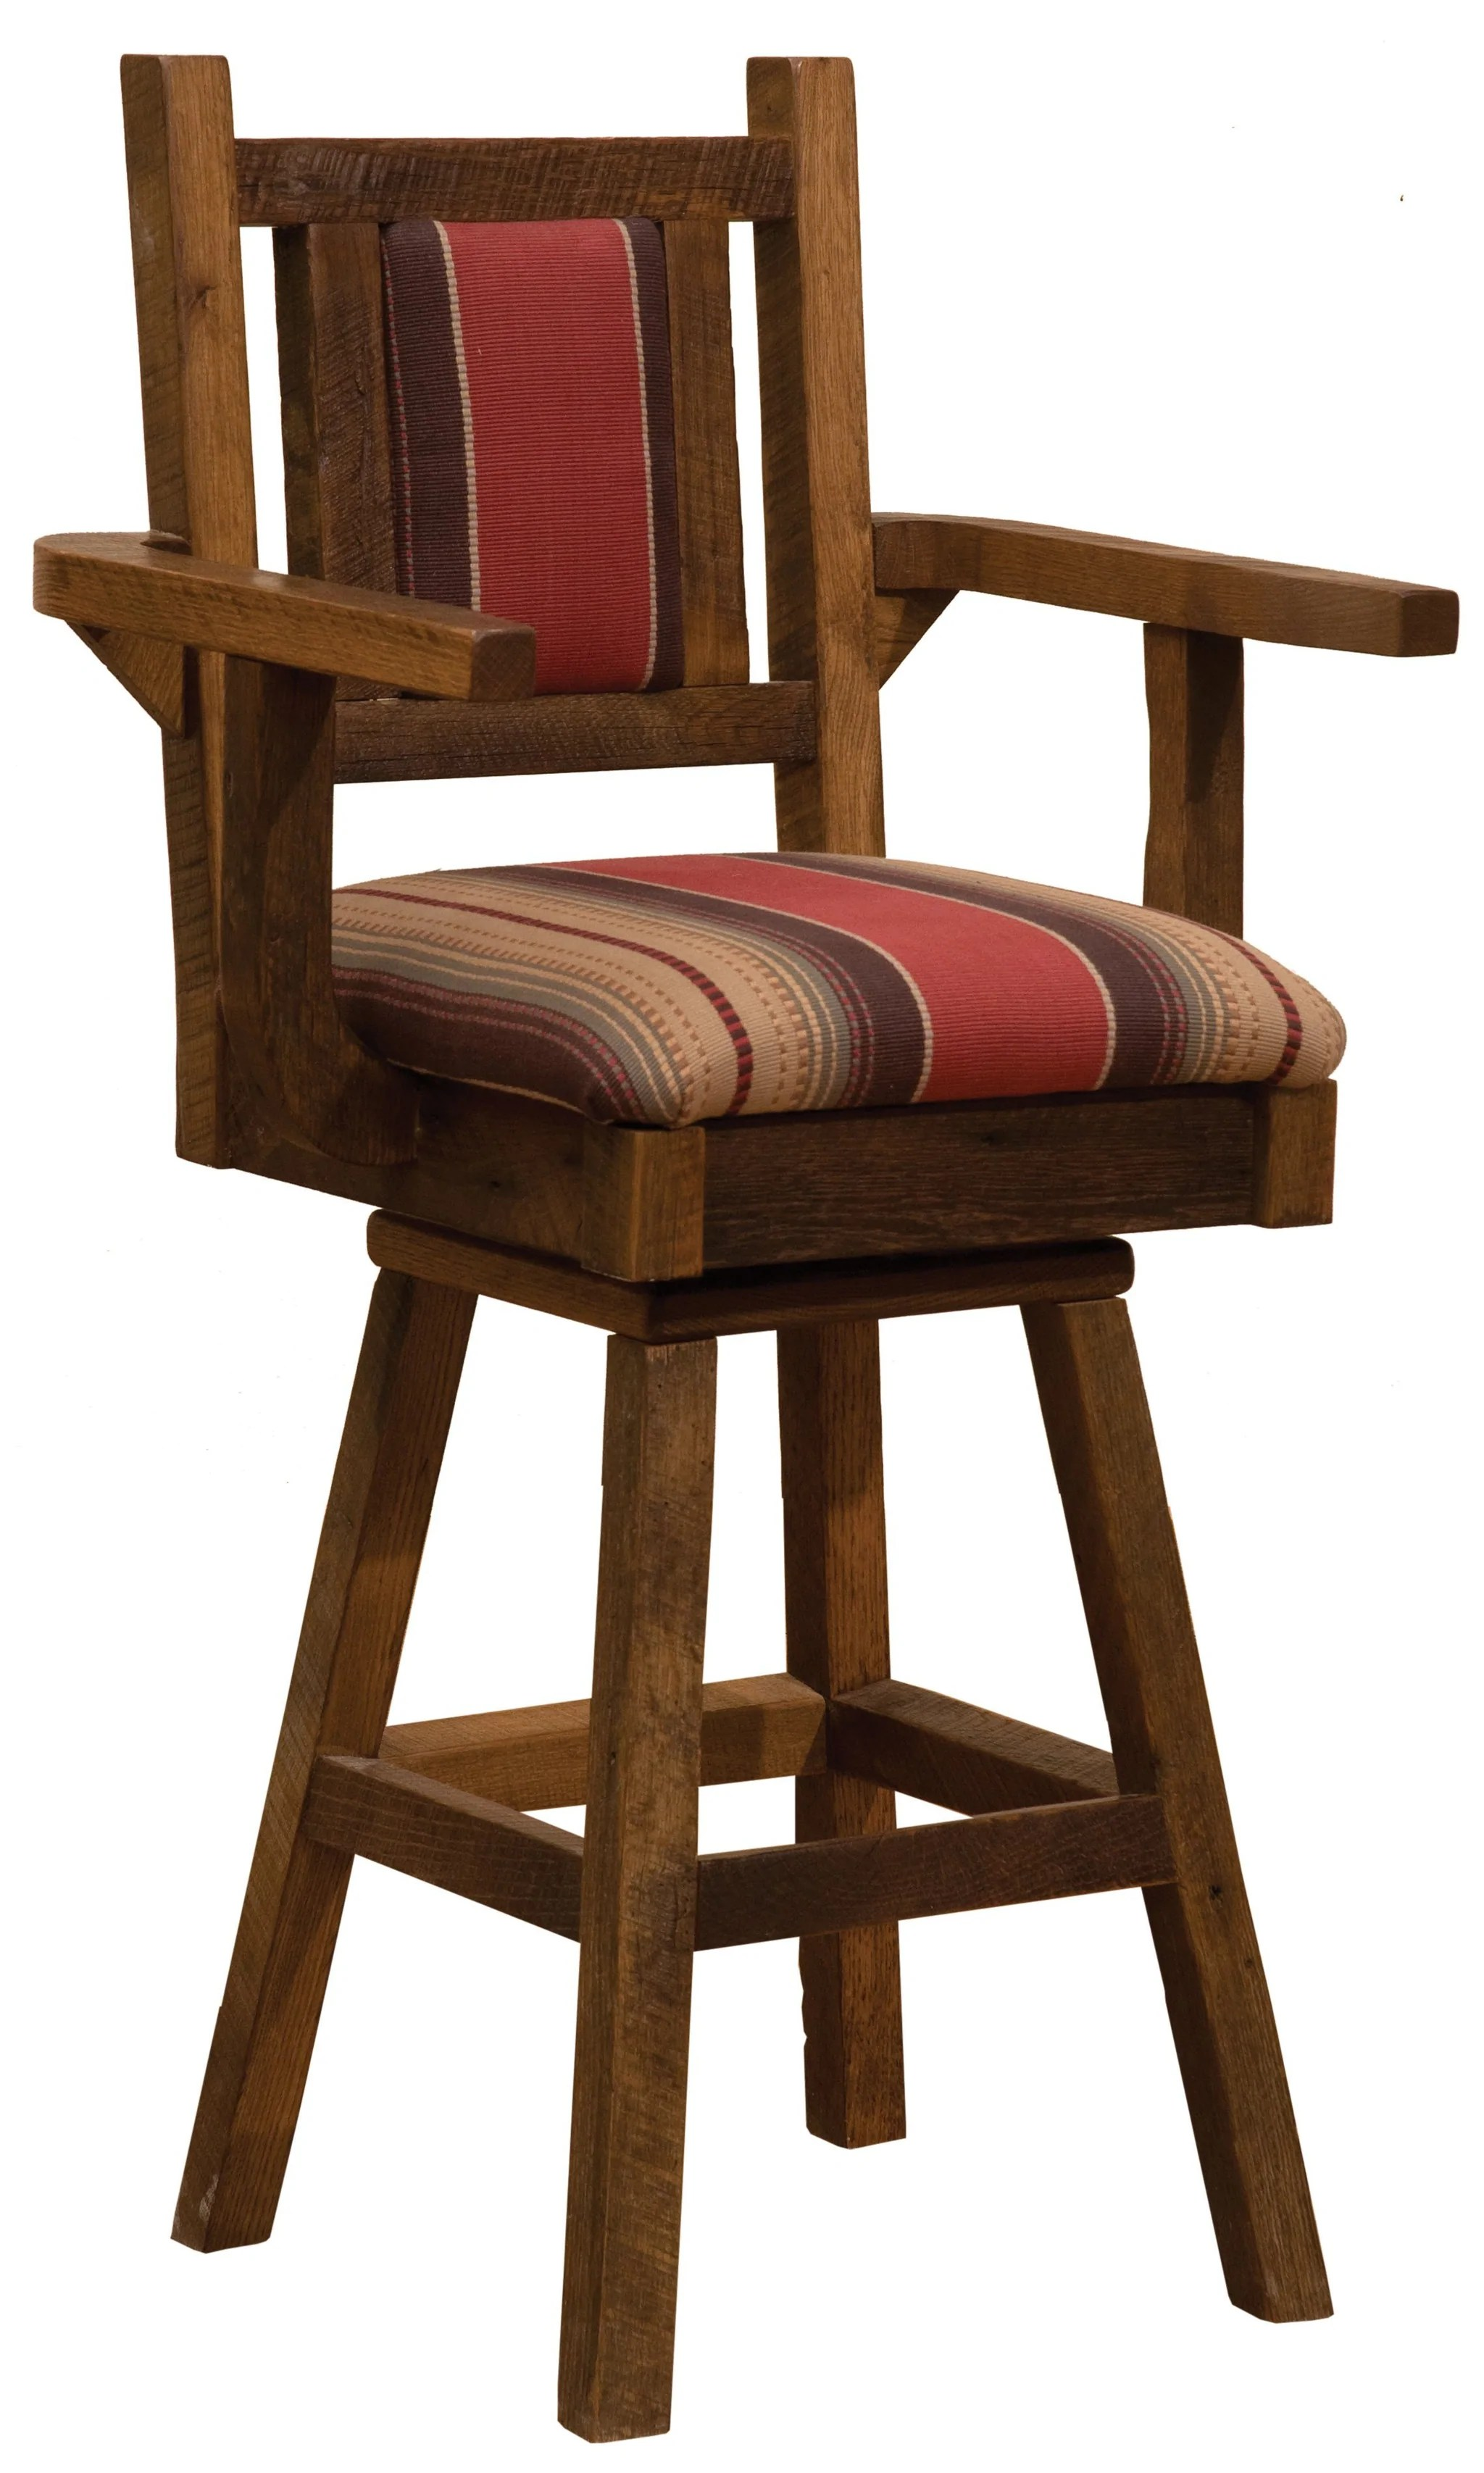 Barnwood Swivel Upholstered Bar Stool With Back And Arms 30 Seat He